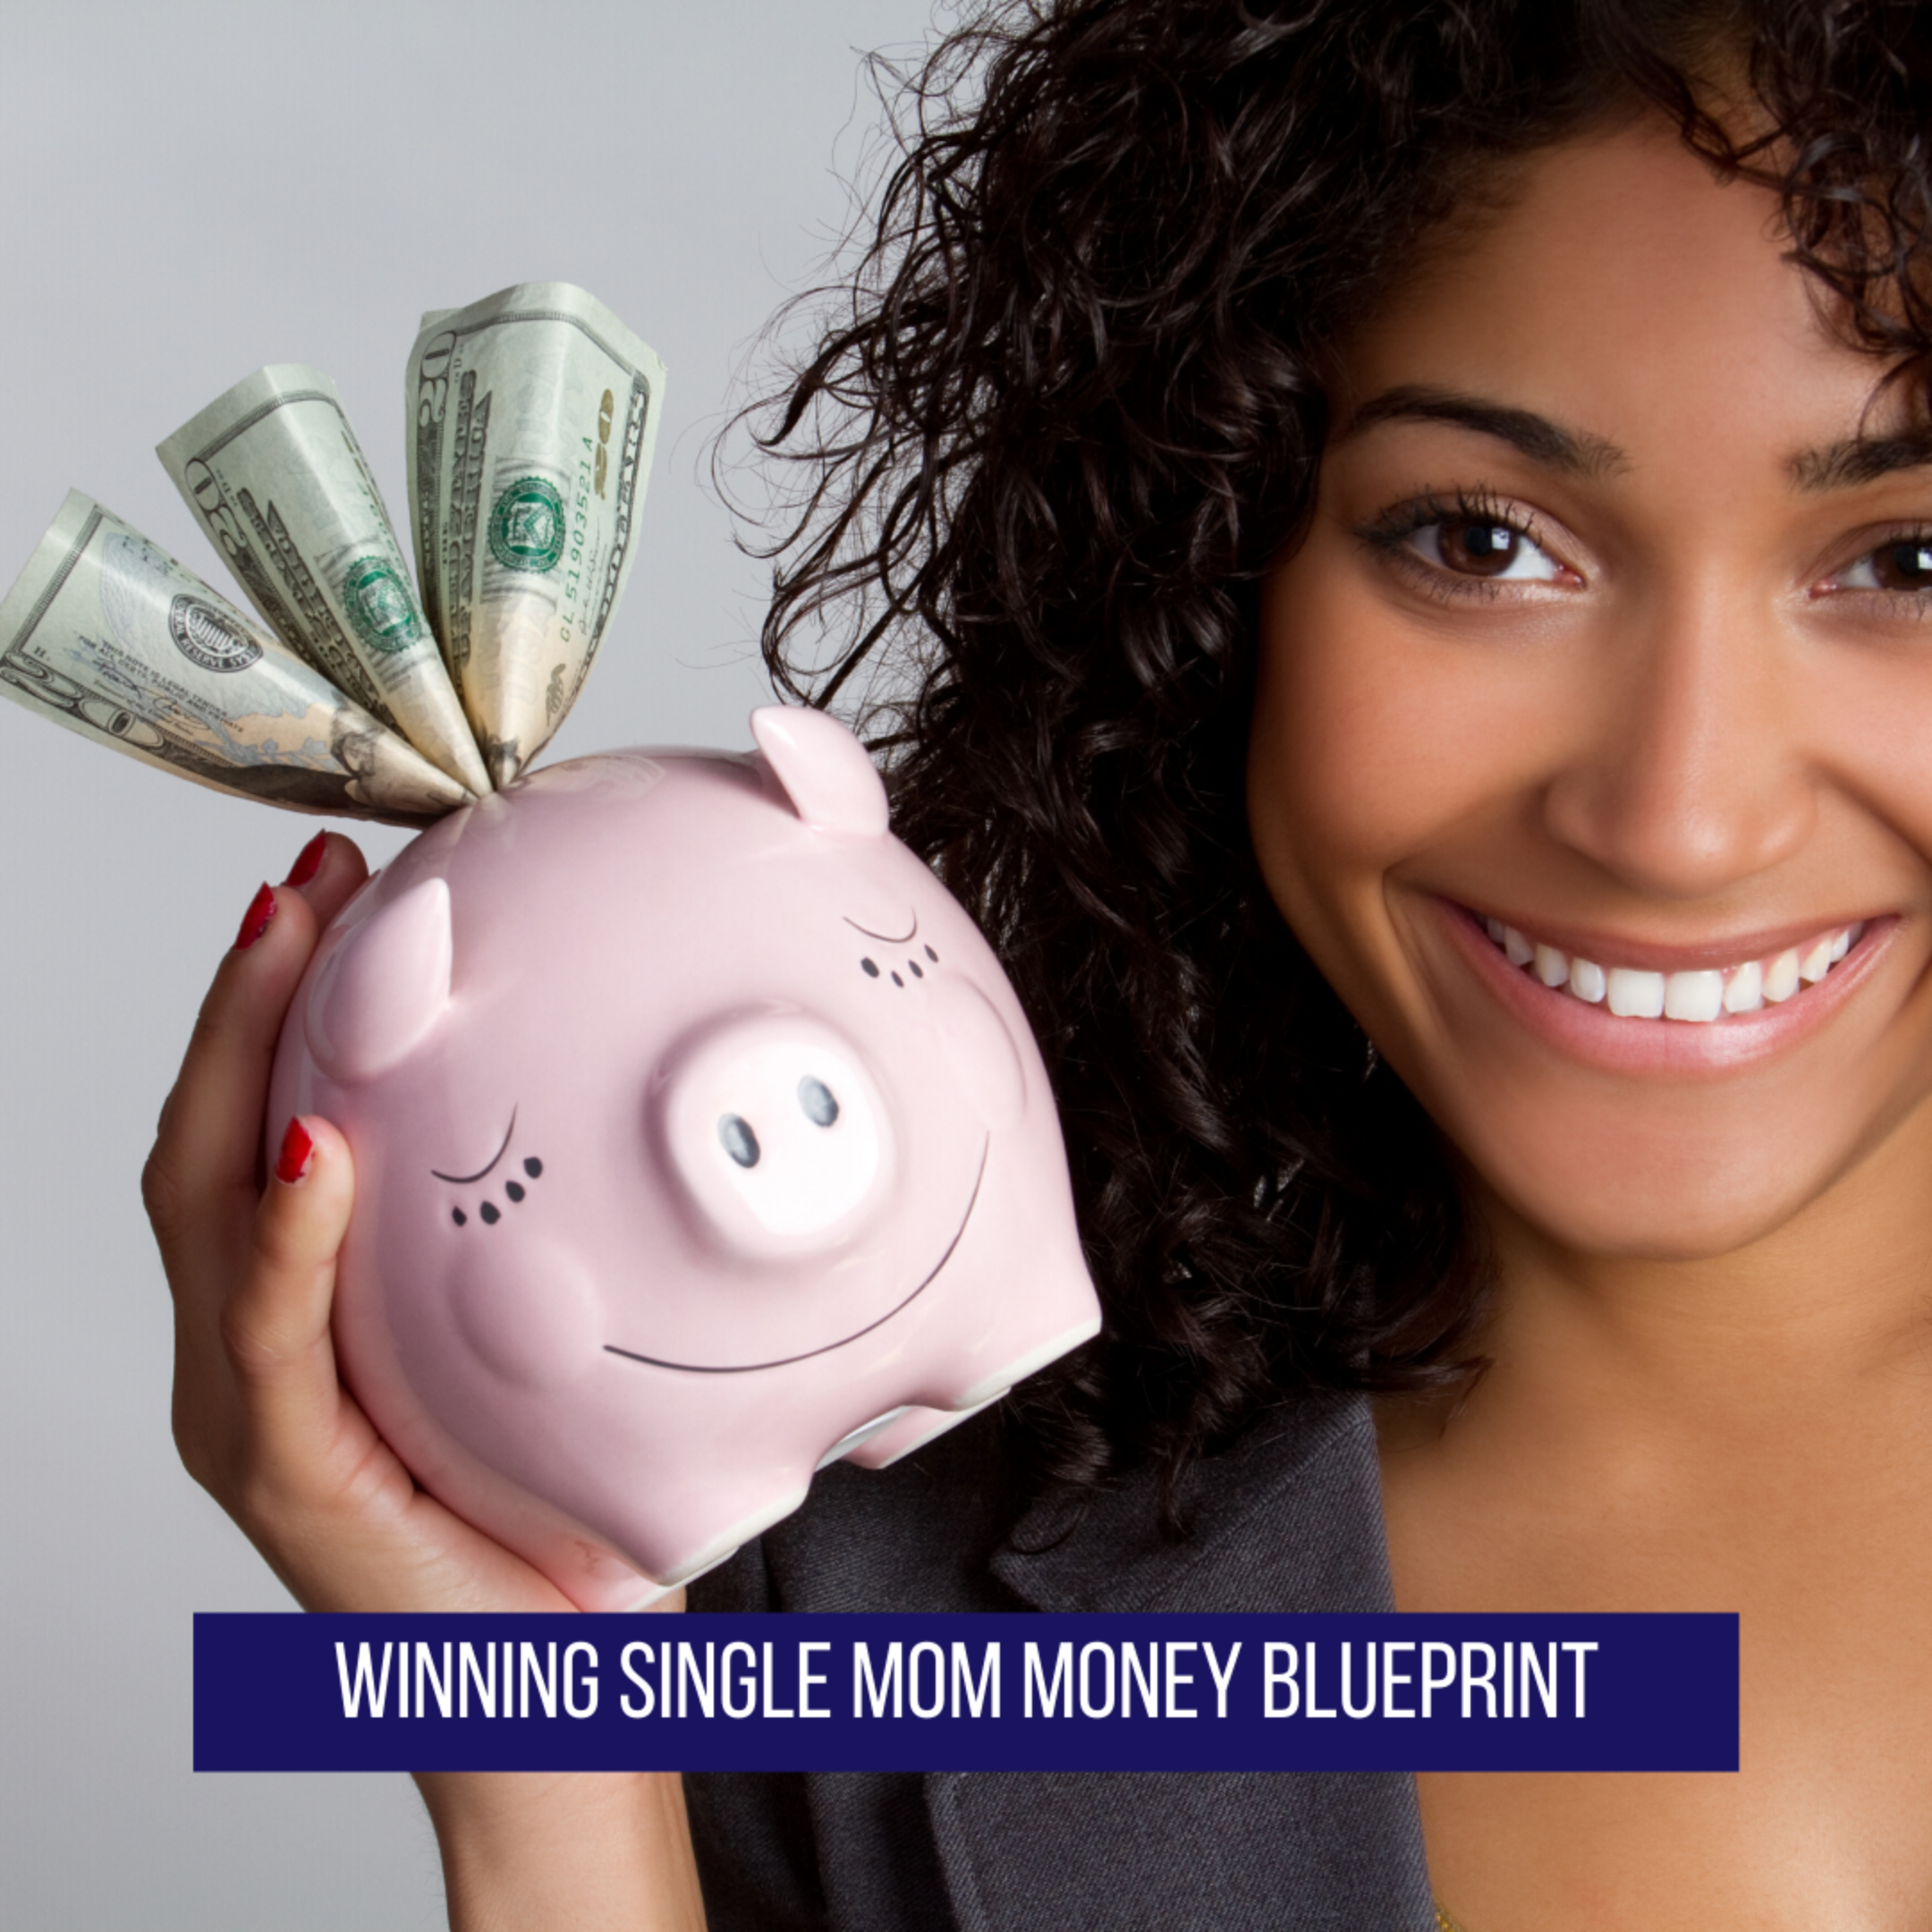 Winning Single Mom Money Blueprint